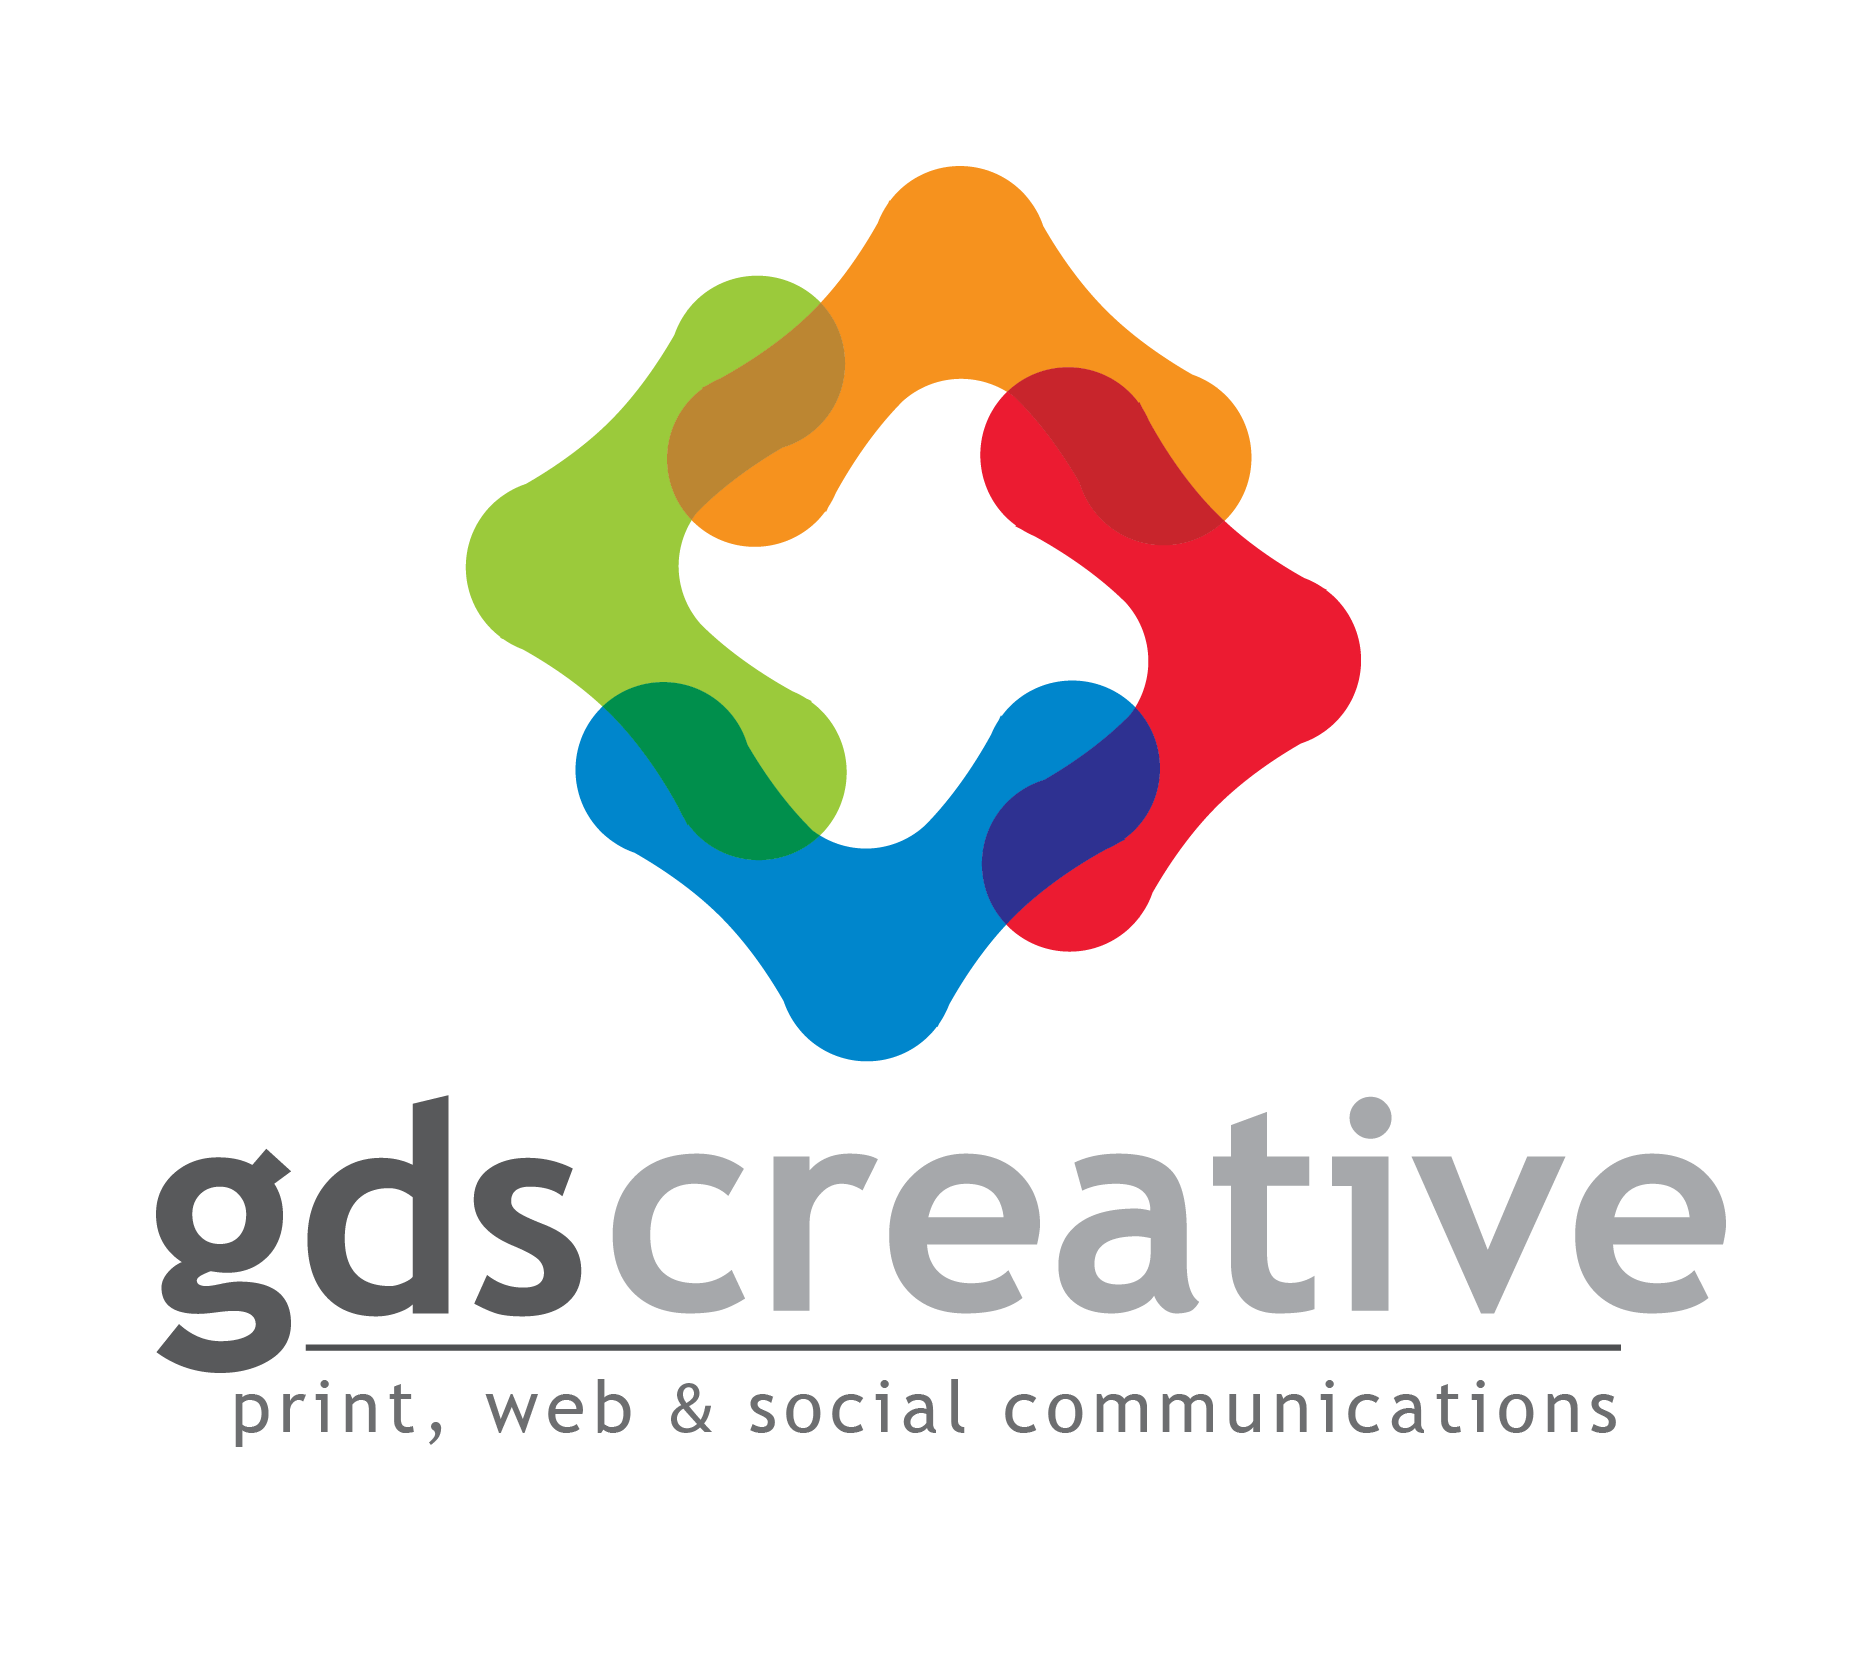 Welcome to GDS Creative!